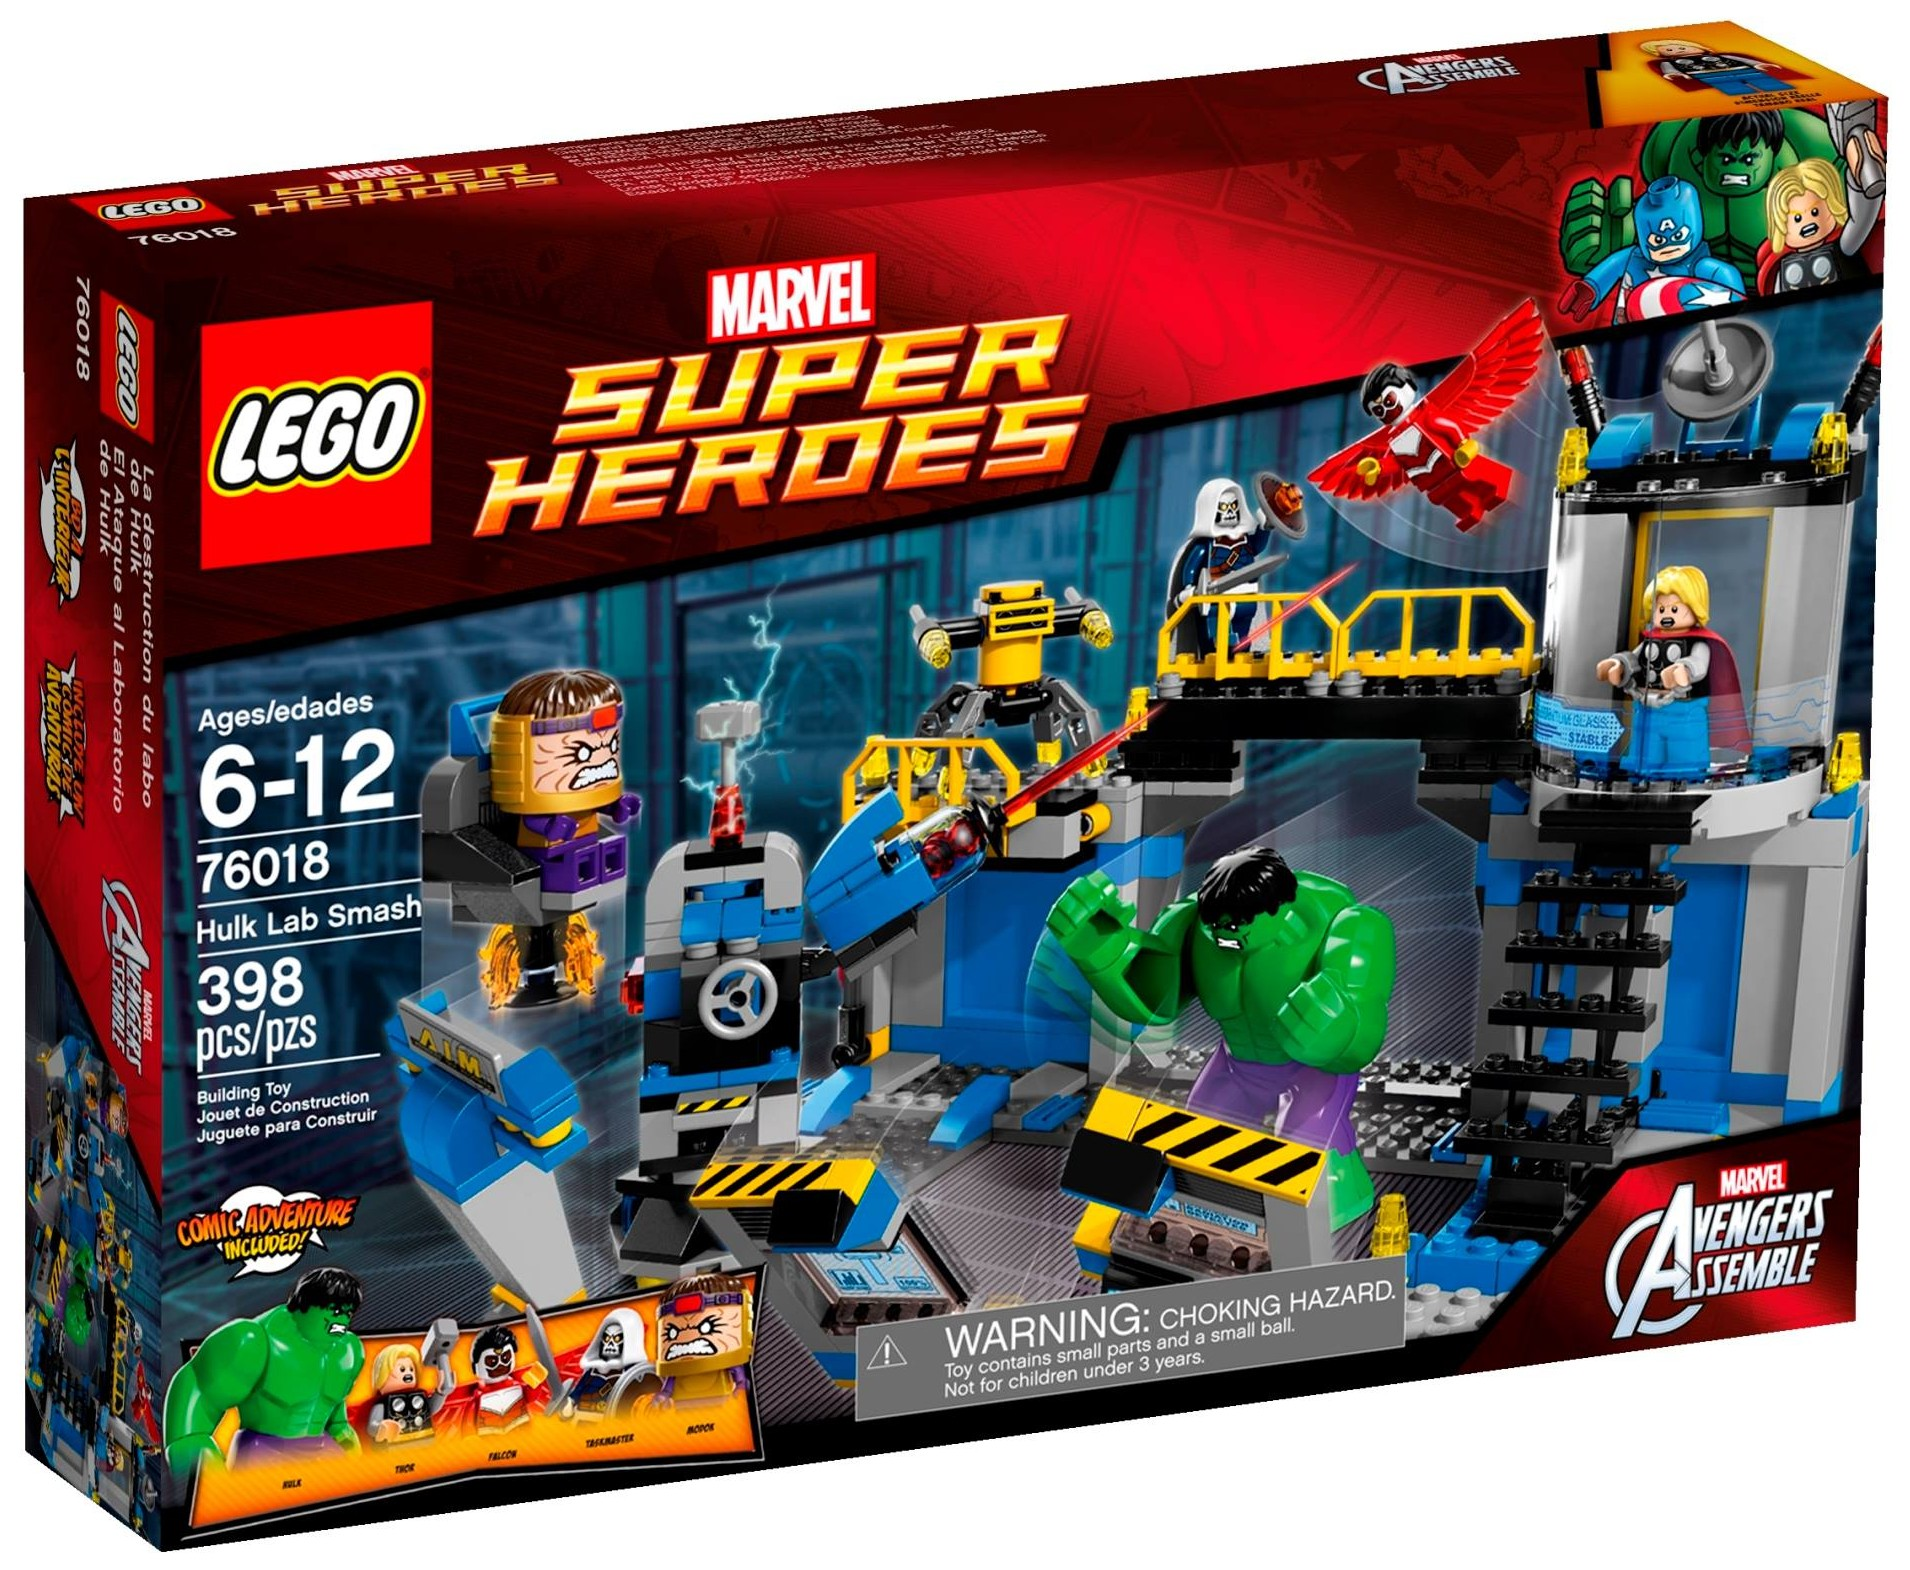 Image result for marvel lego